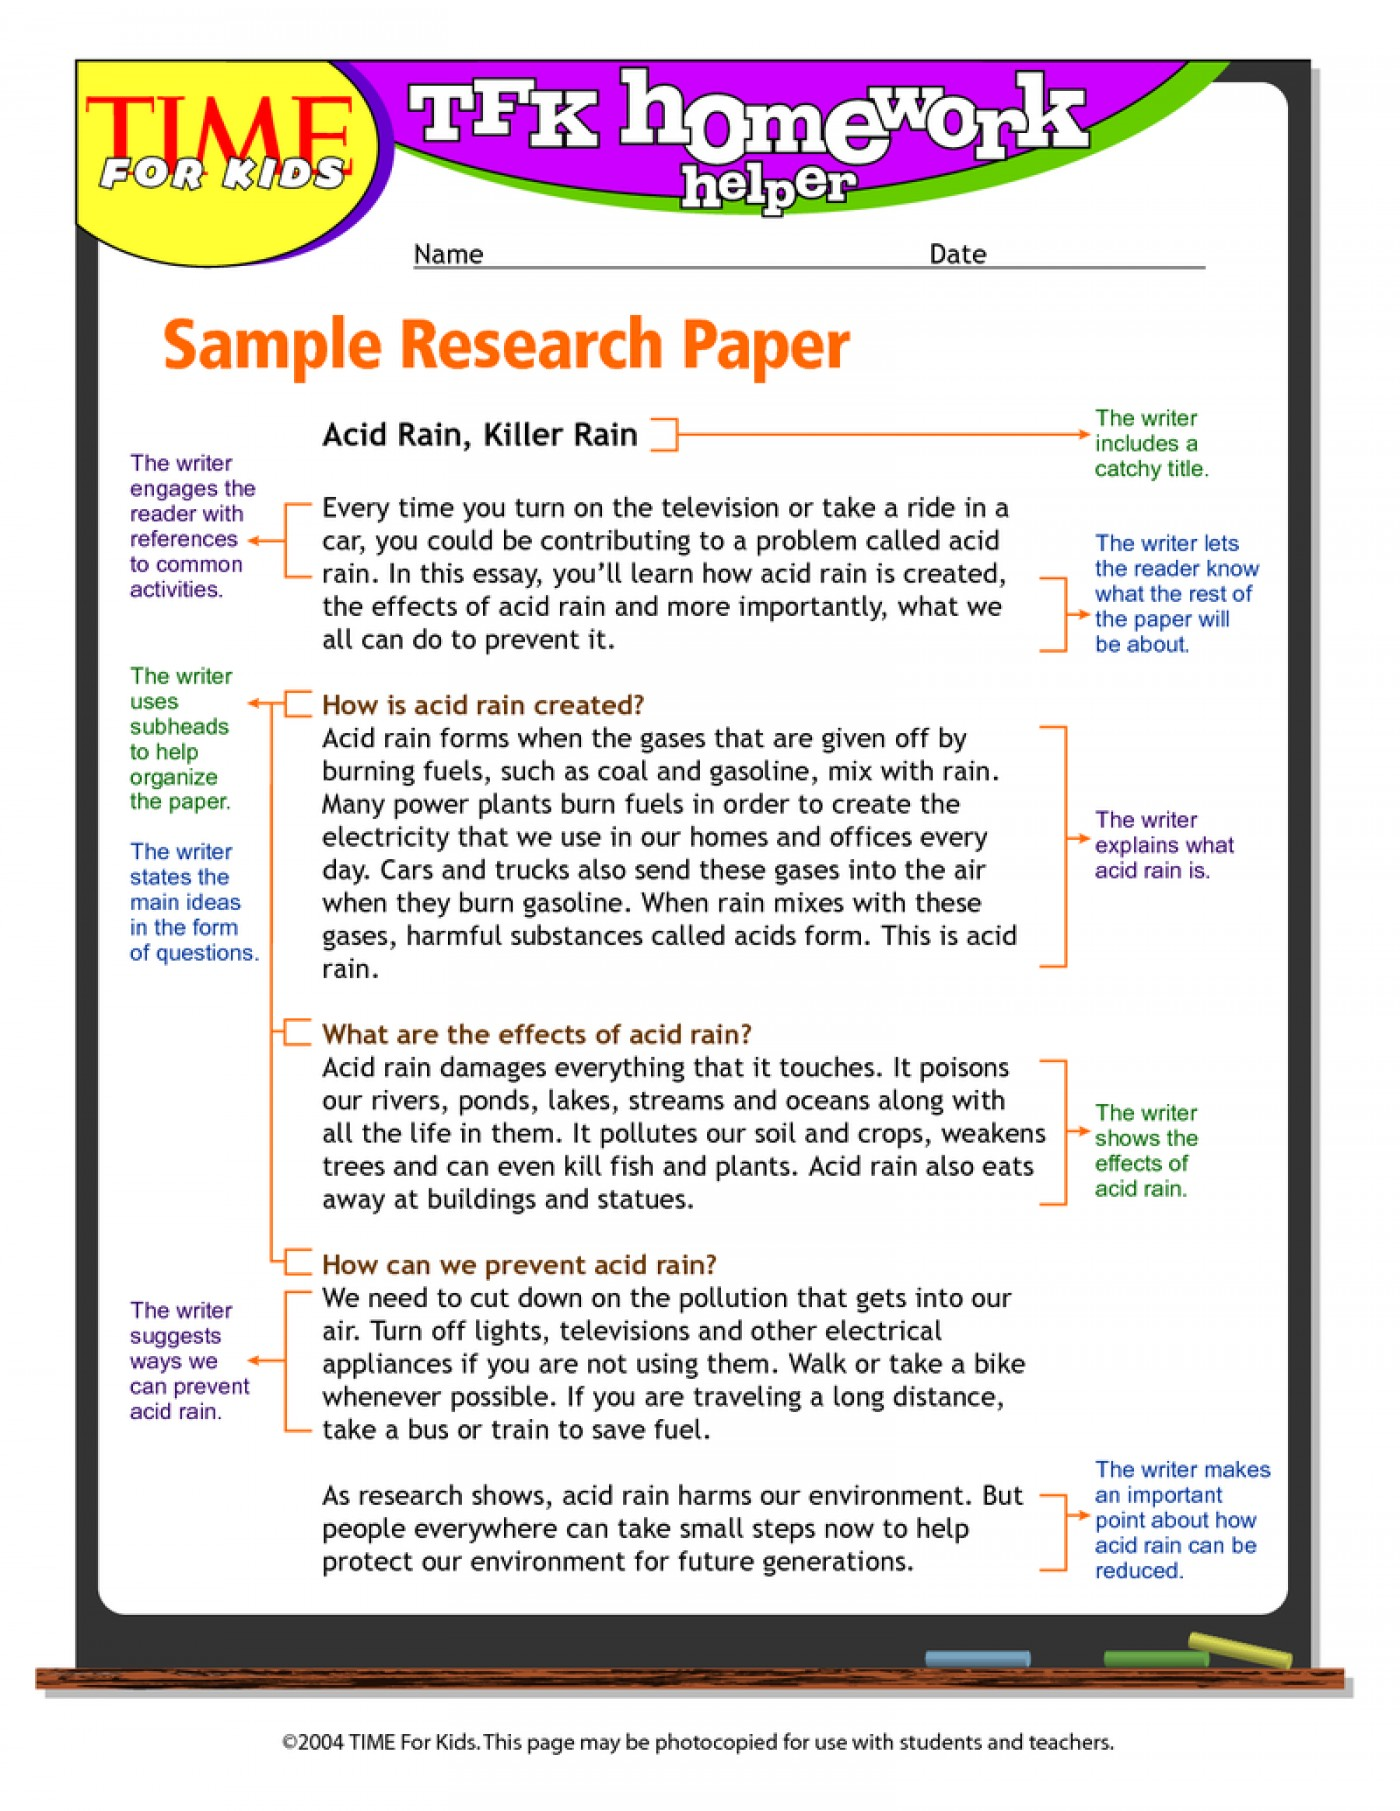 009 How To Do Research Top A Paper Write Title Page Reference Cover For In Apa Format 1400